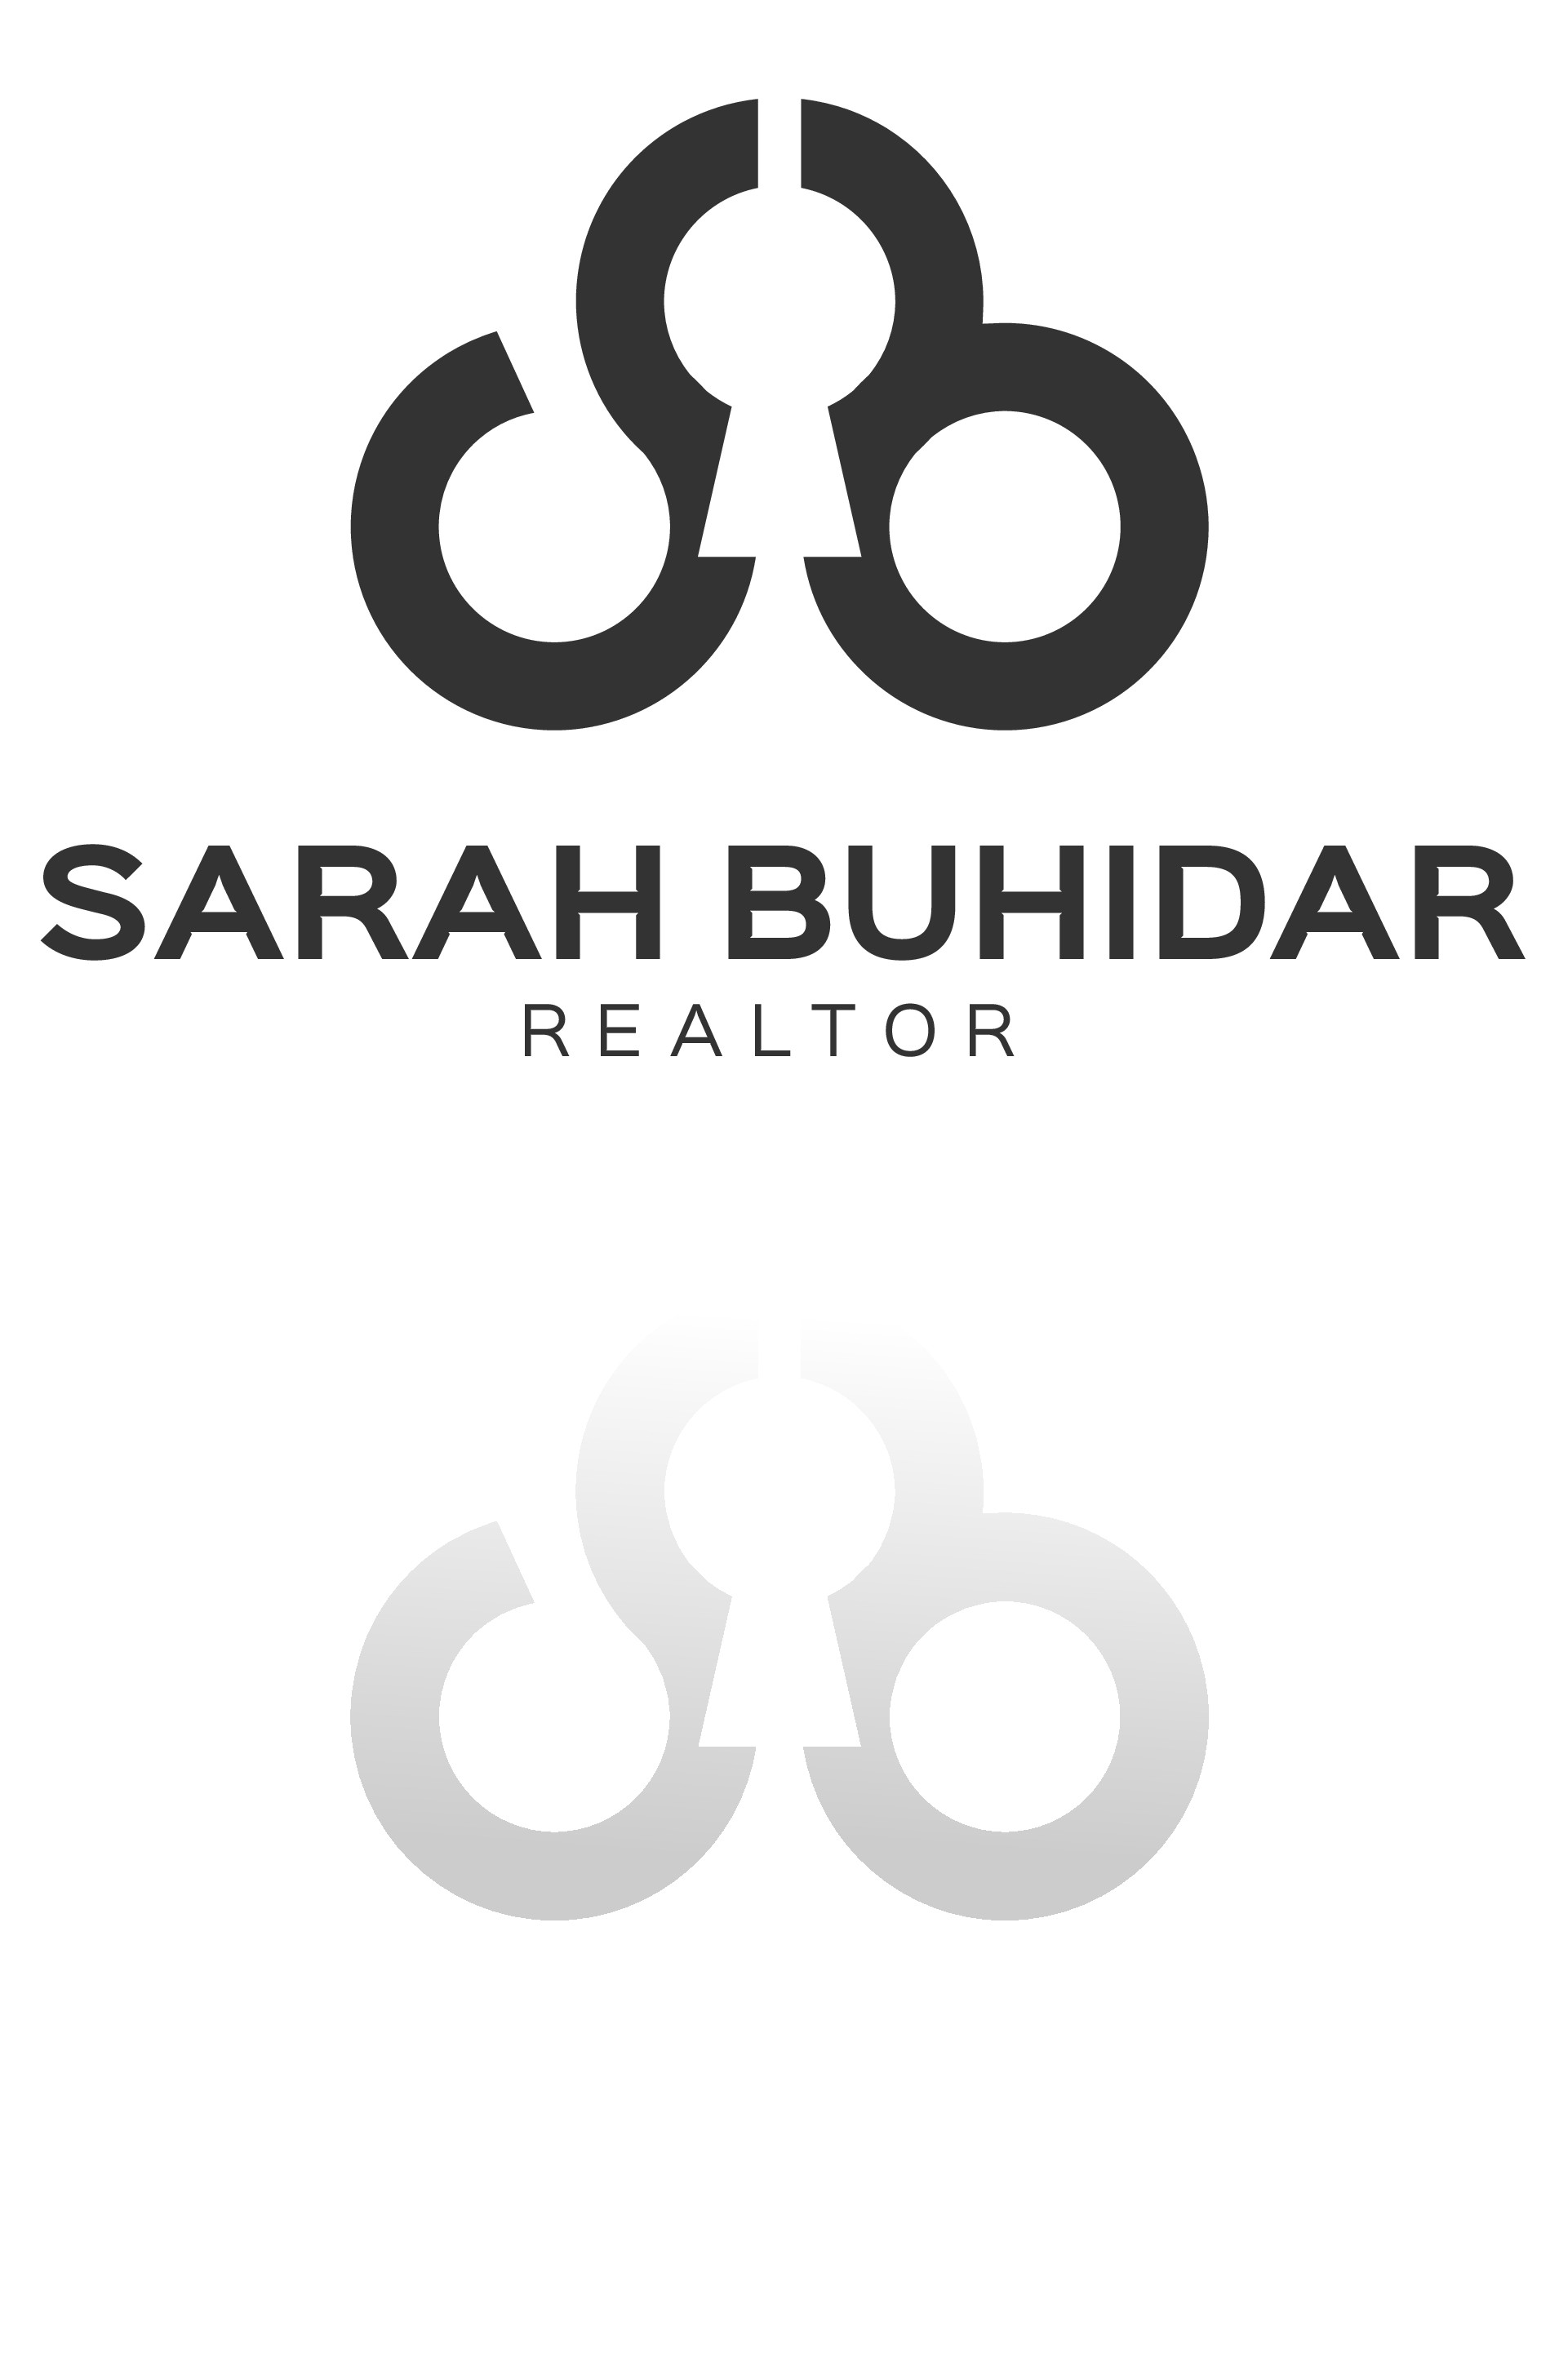 Luxurious and Intriguing Real Estate Agent Logo Needed